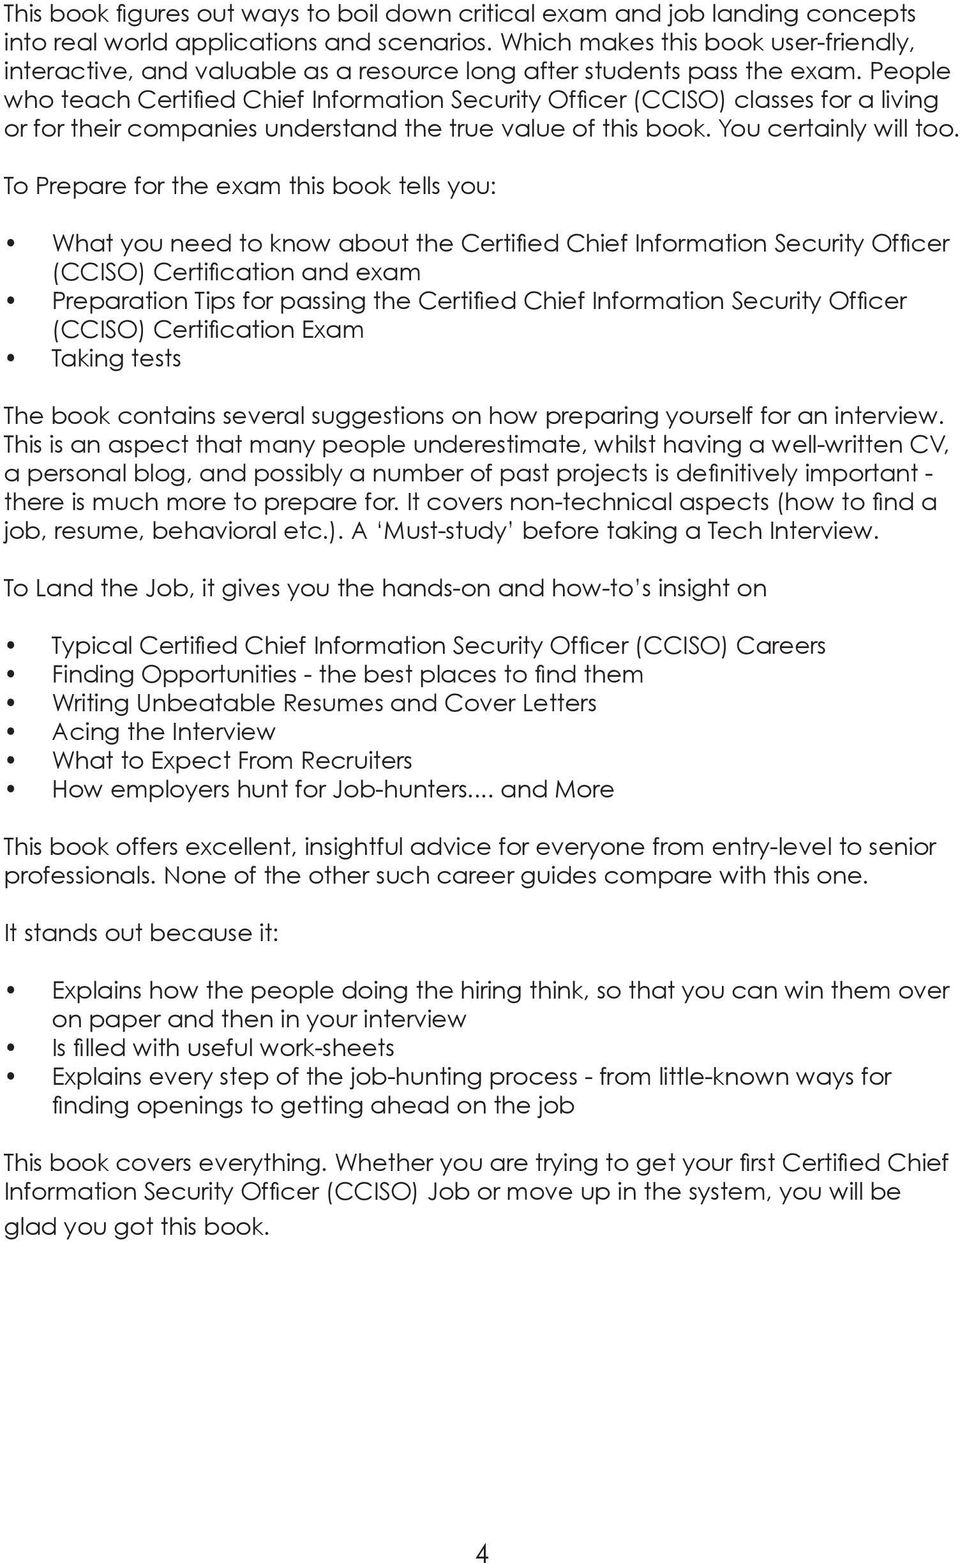 Ciso Resume Ciso Resume Information Security Project Manager Job Description